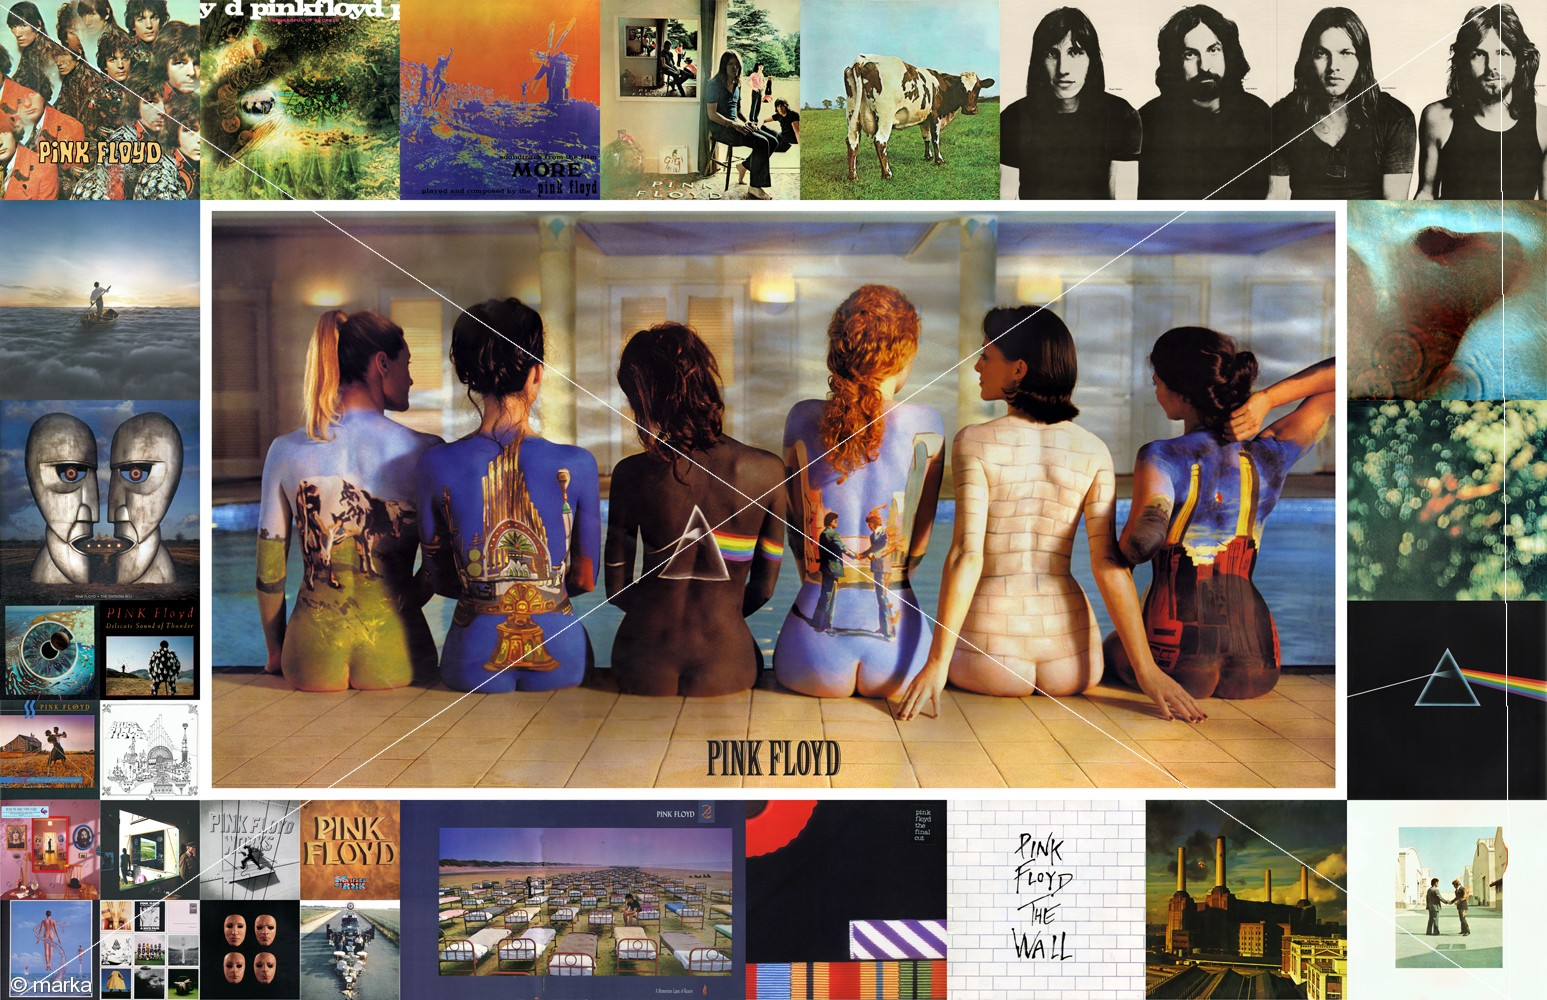 Body art, the pink floyd back catalogue poster, and objectification